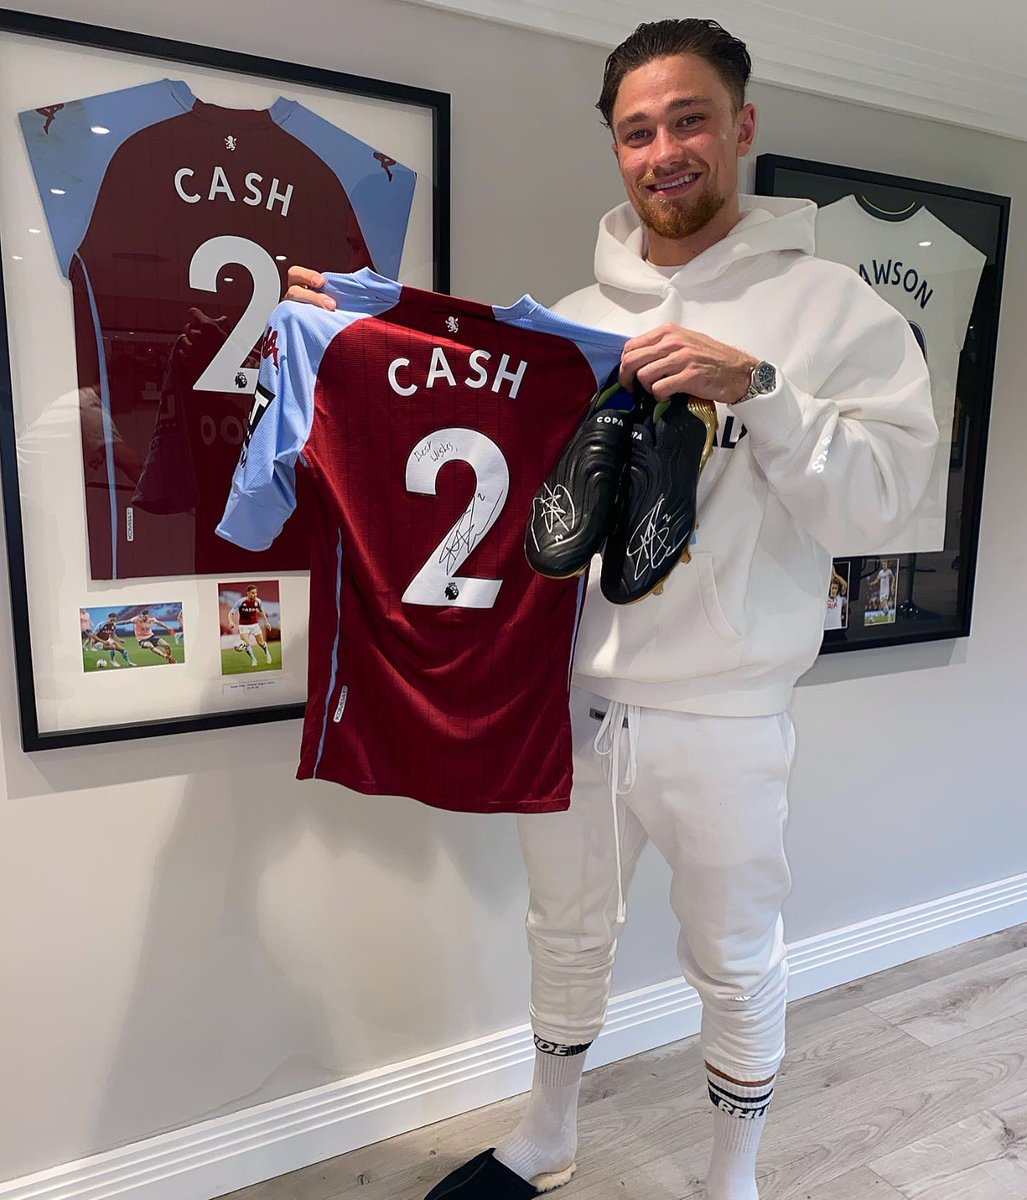 Im giving away a signed shirt & my @adidasfootball COPA's signed by me 🔥 All you have to do to win is:  1️⃣ Follow @mattycash622, @Dugout 2️⃣ RT this post 3️⃣ Tag 2 mates   Two winners will be announced on 1st March! Good luck 🤞